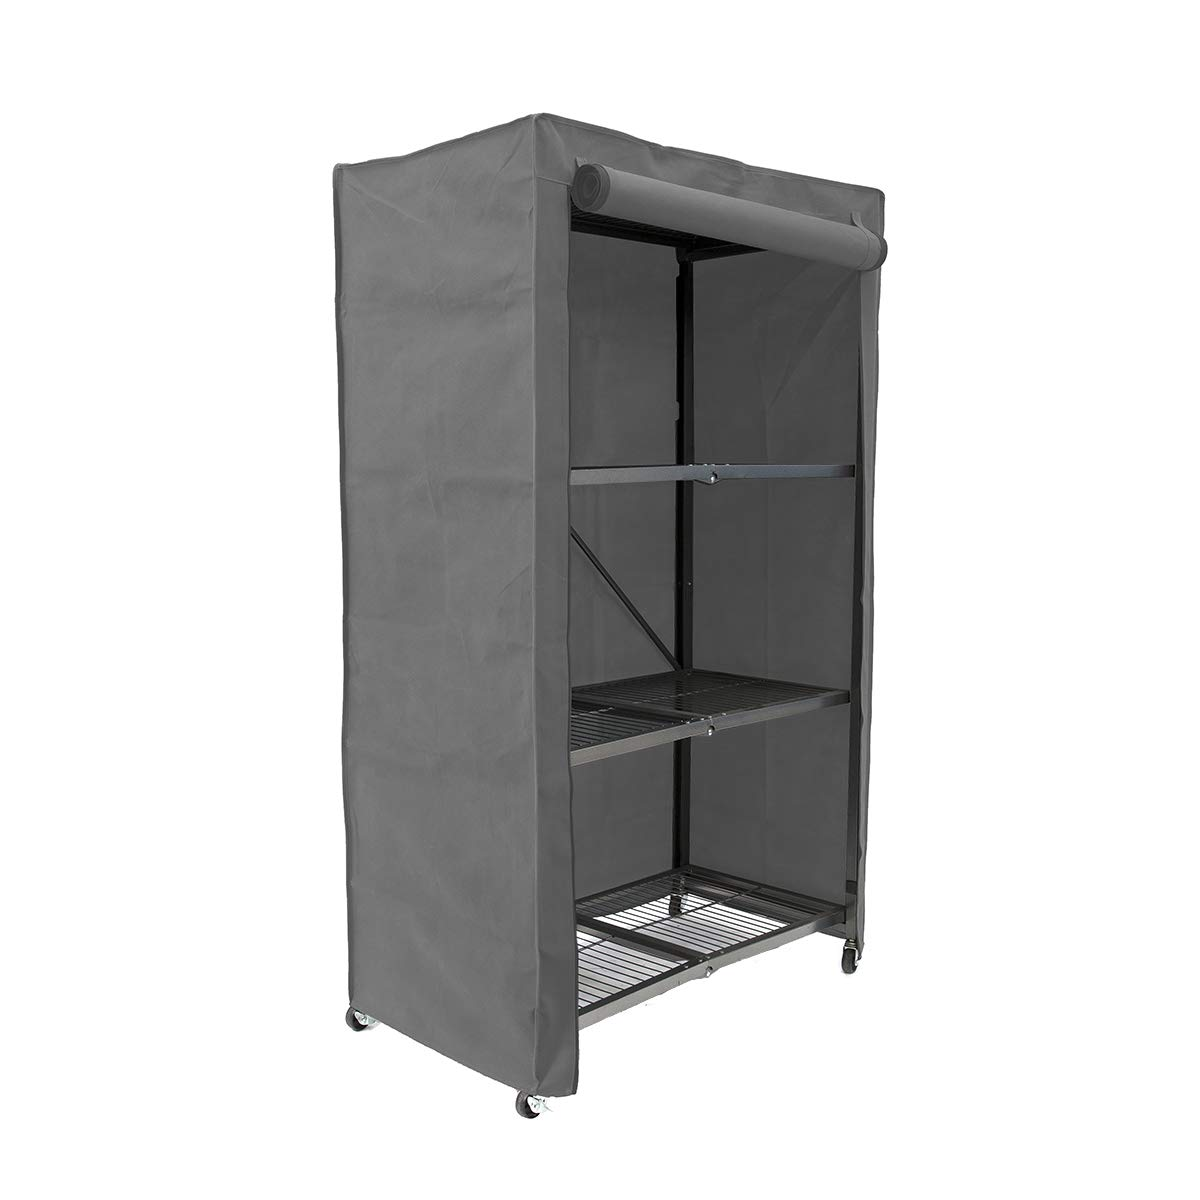 Gray Origami Fabric Protection Cover for 4-Shelf Large Storage Rack